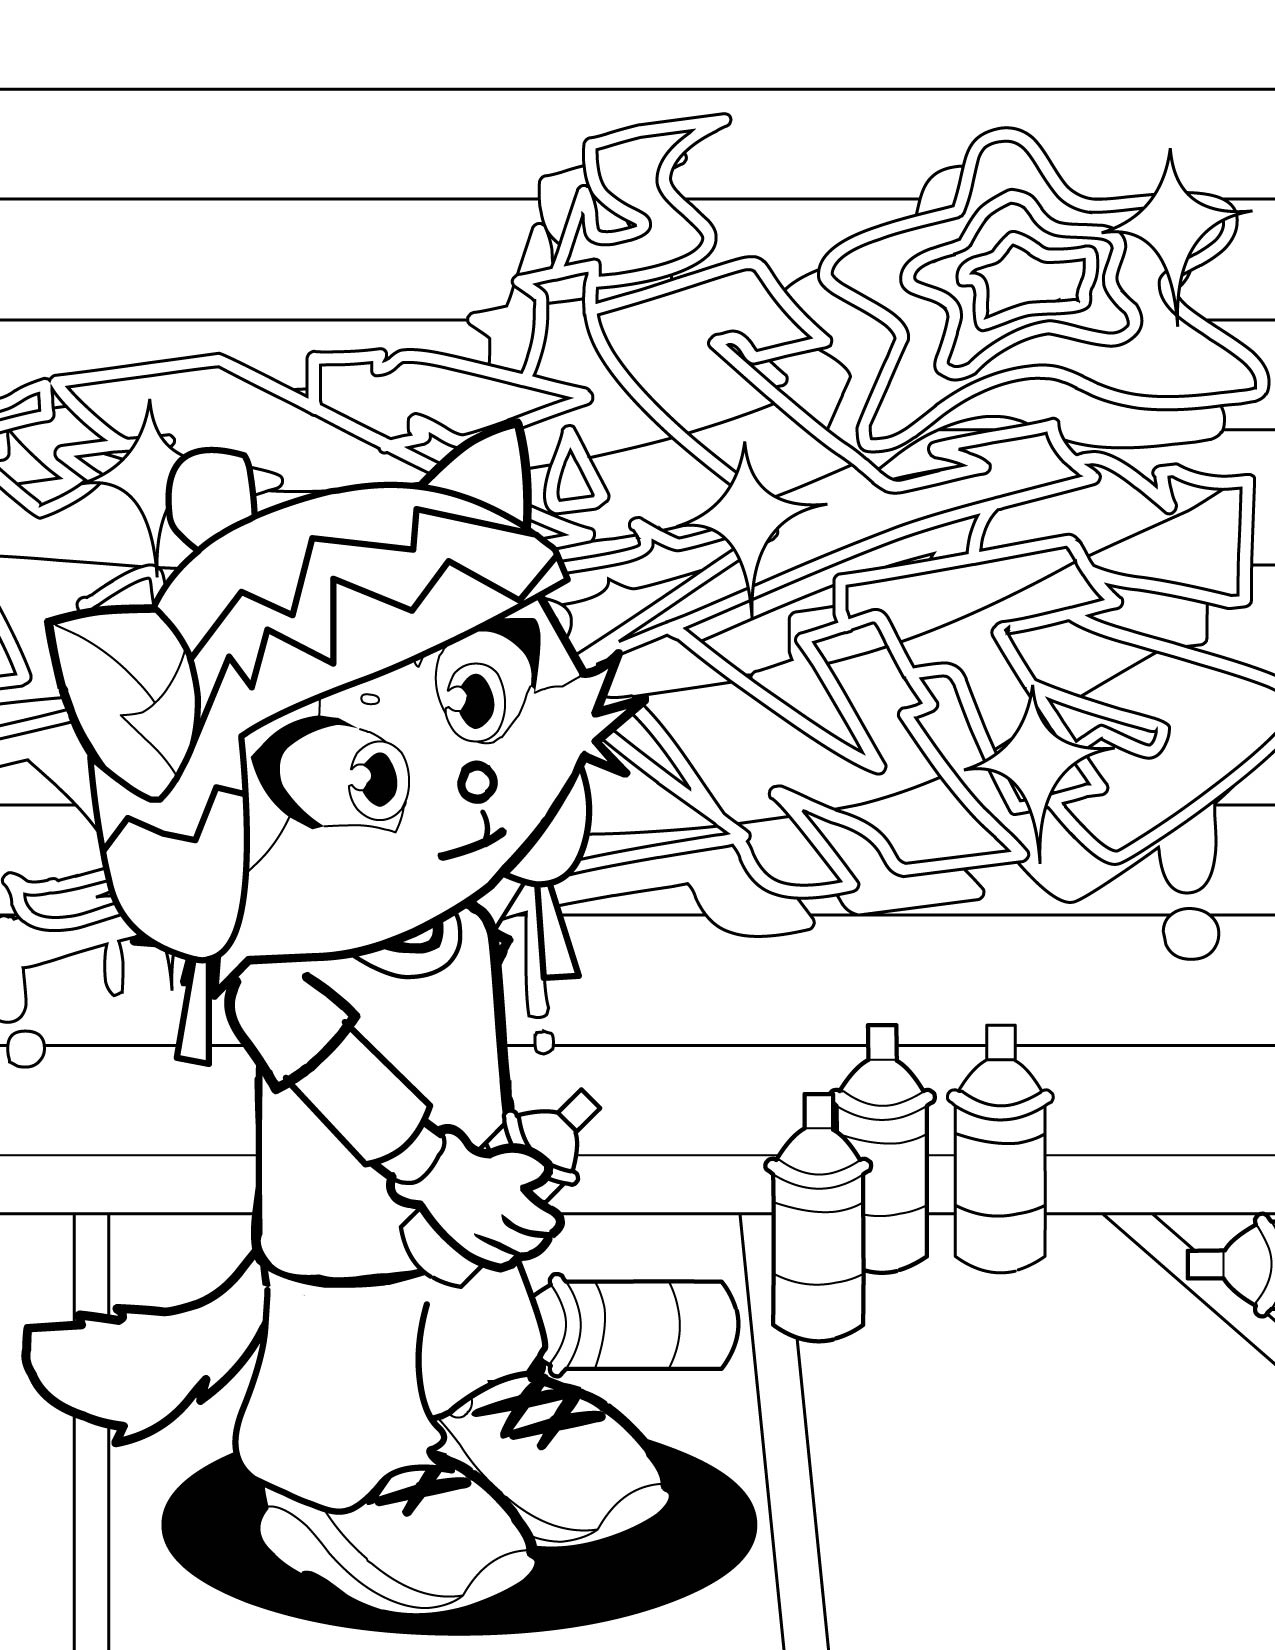 Graffiti art coloring pages - Graffiti Artist